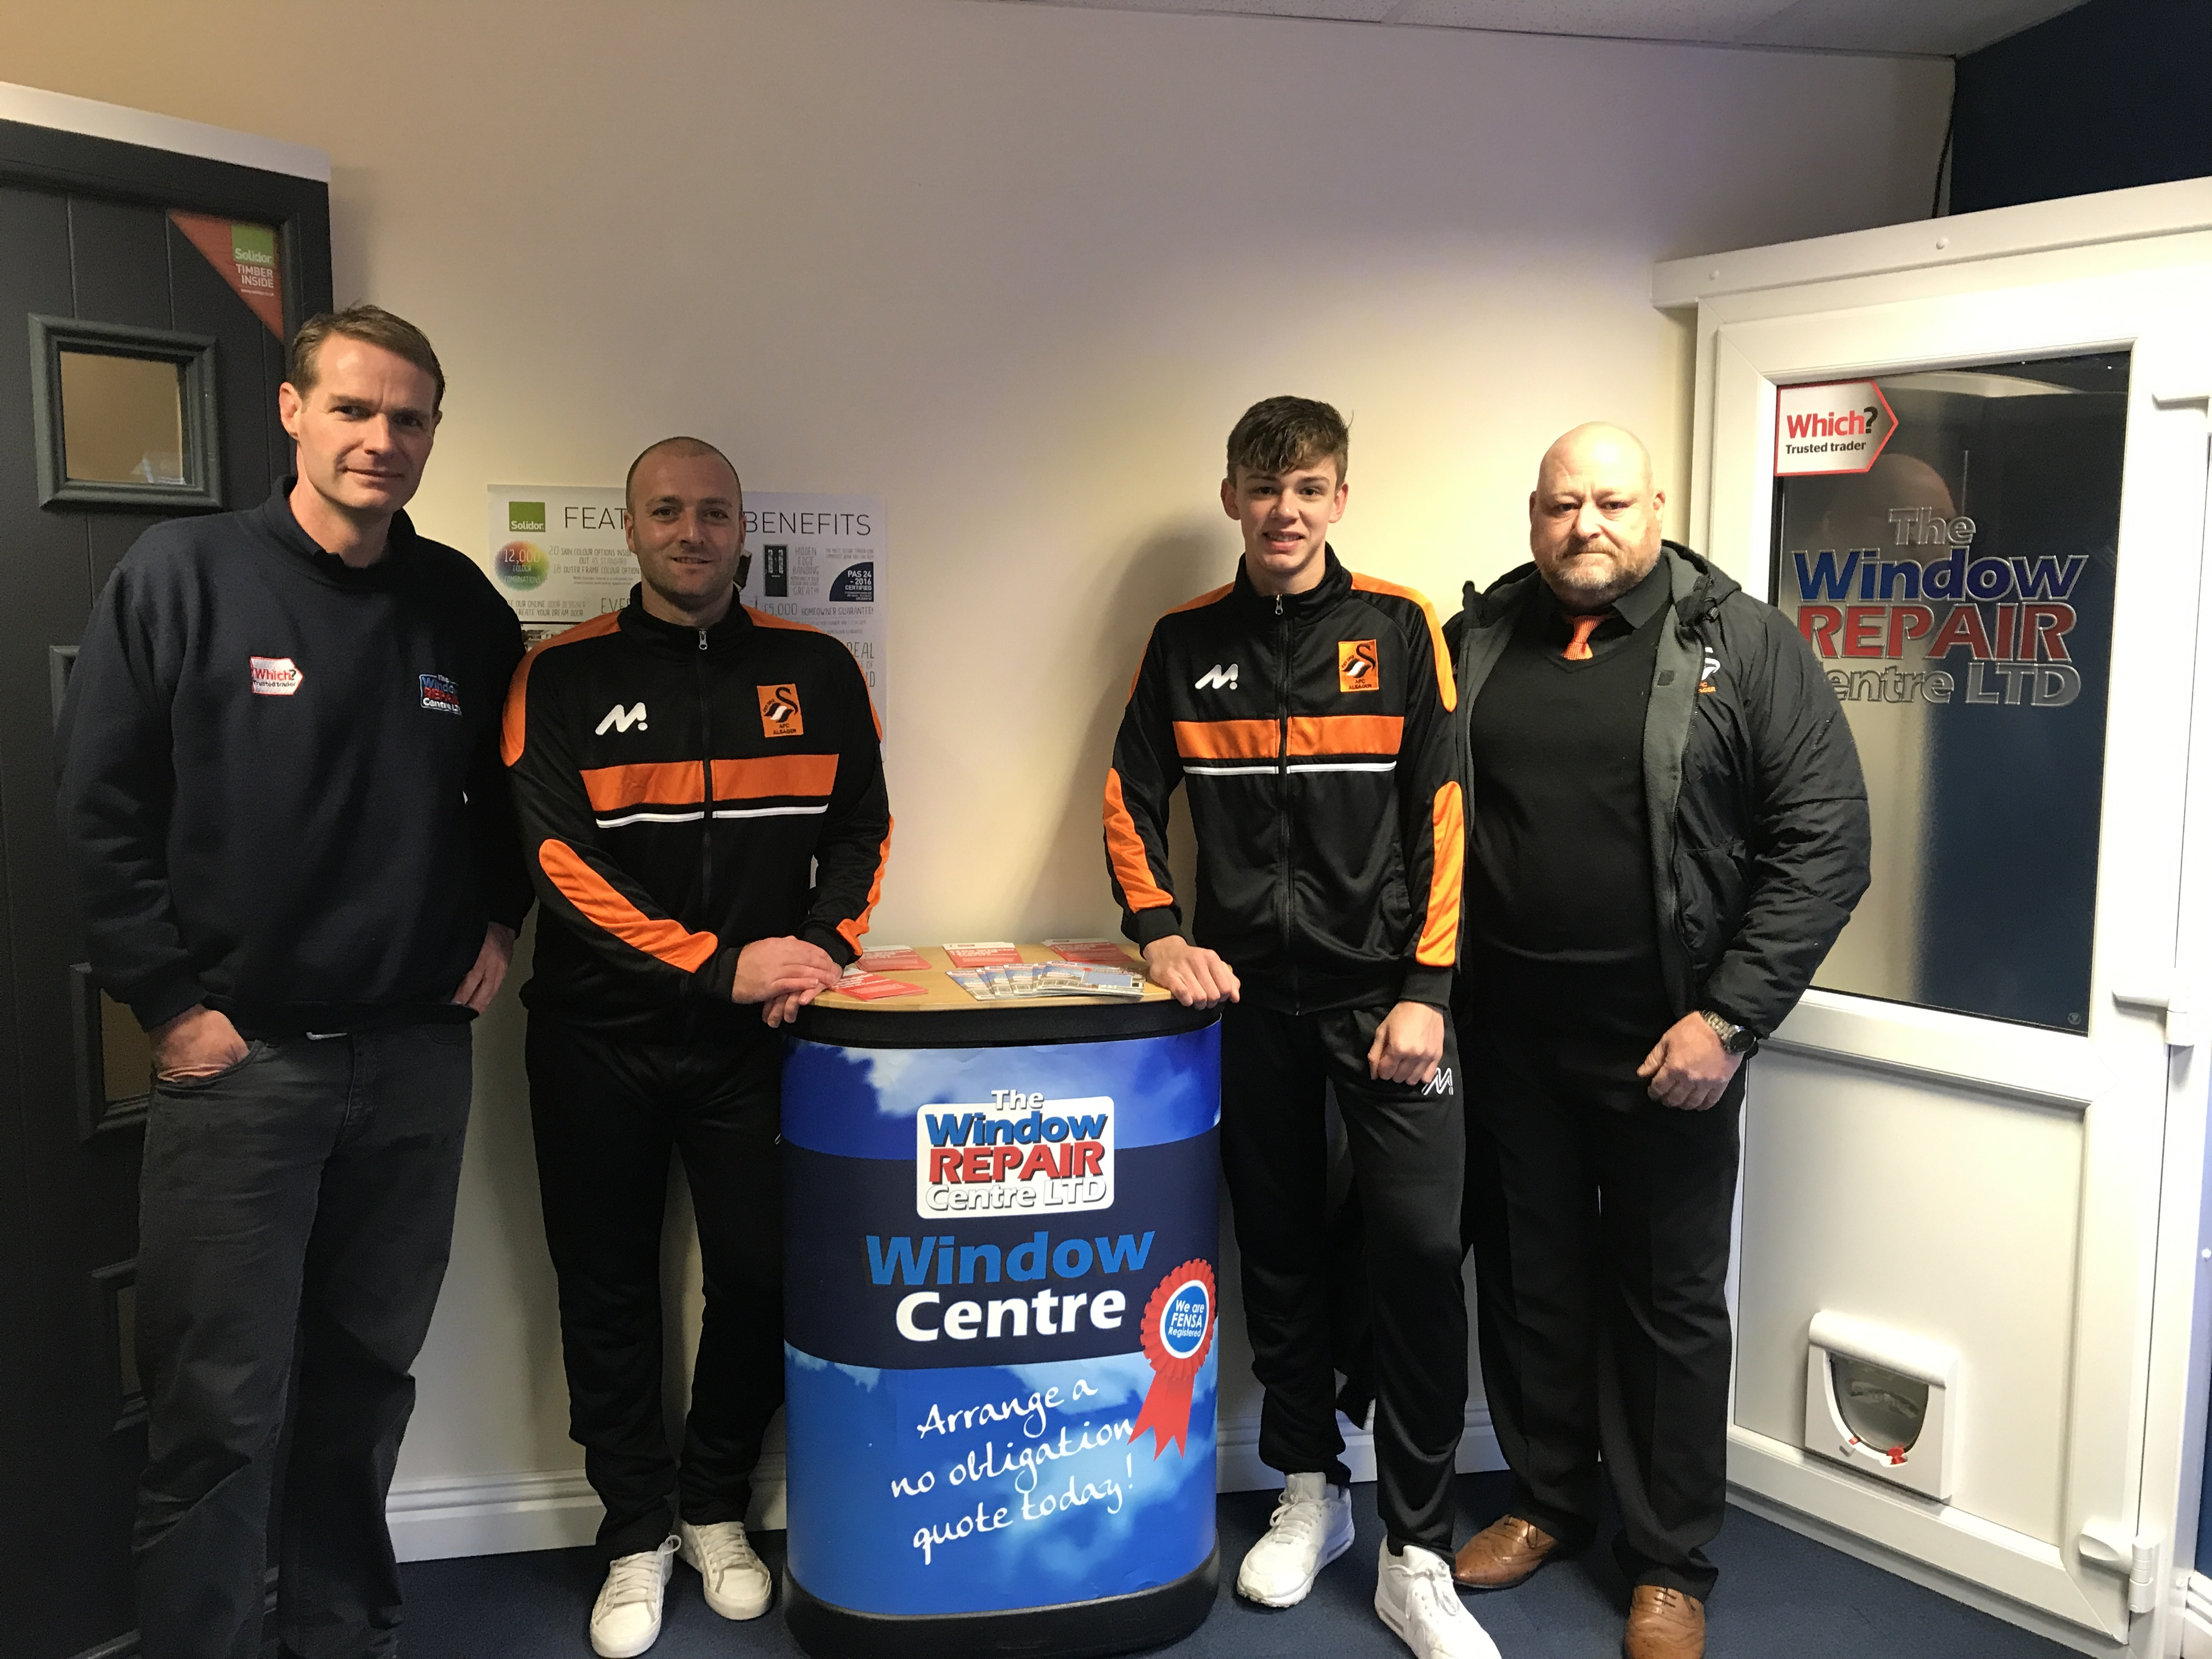 Window Repair Centre Ltd and Alsager FC members